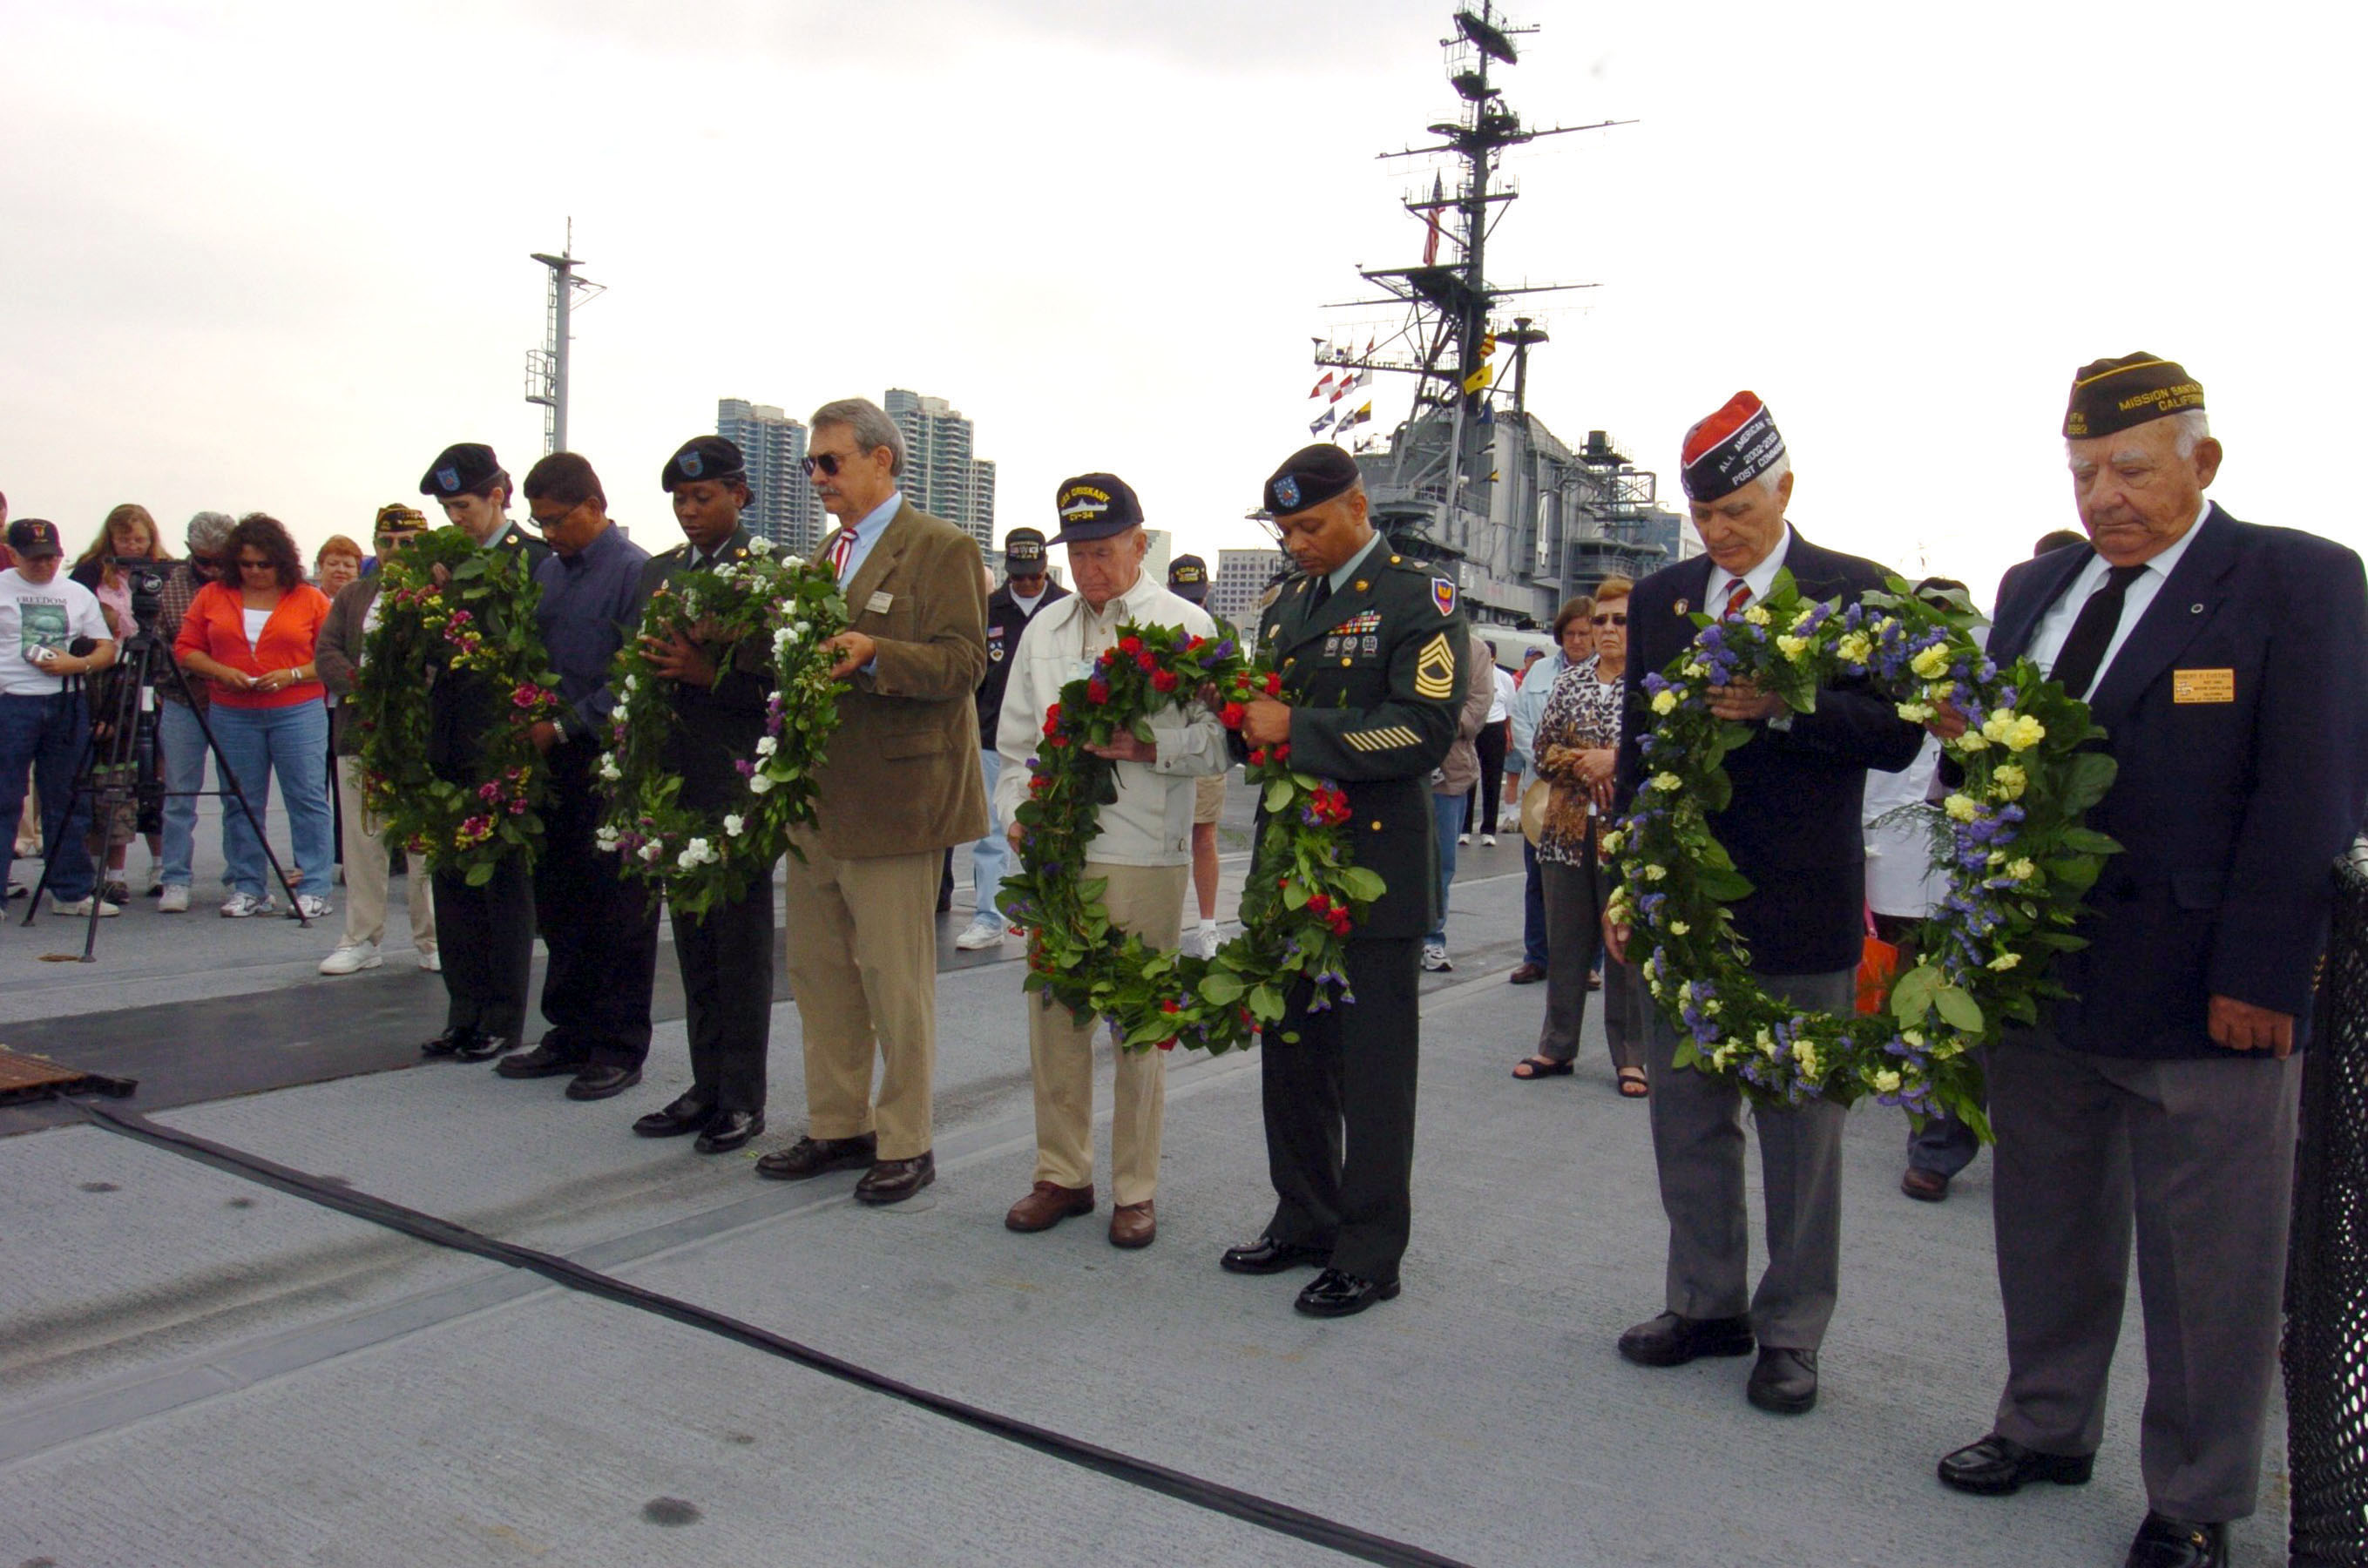 Military veterans observing a moment of silience.